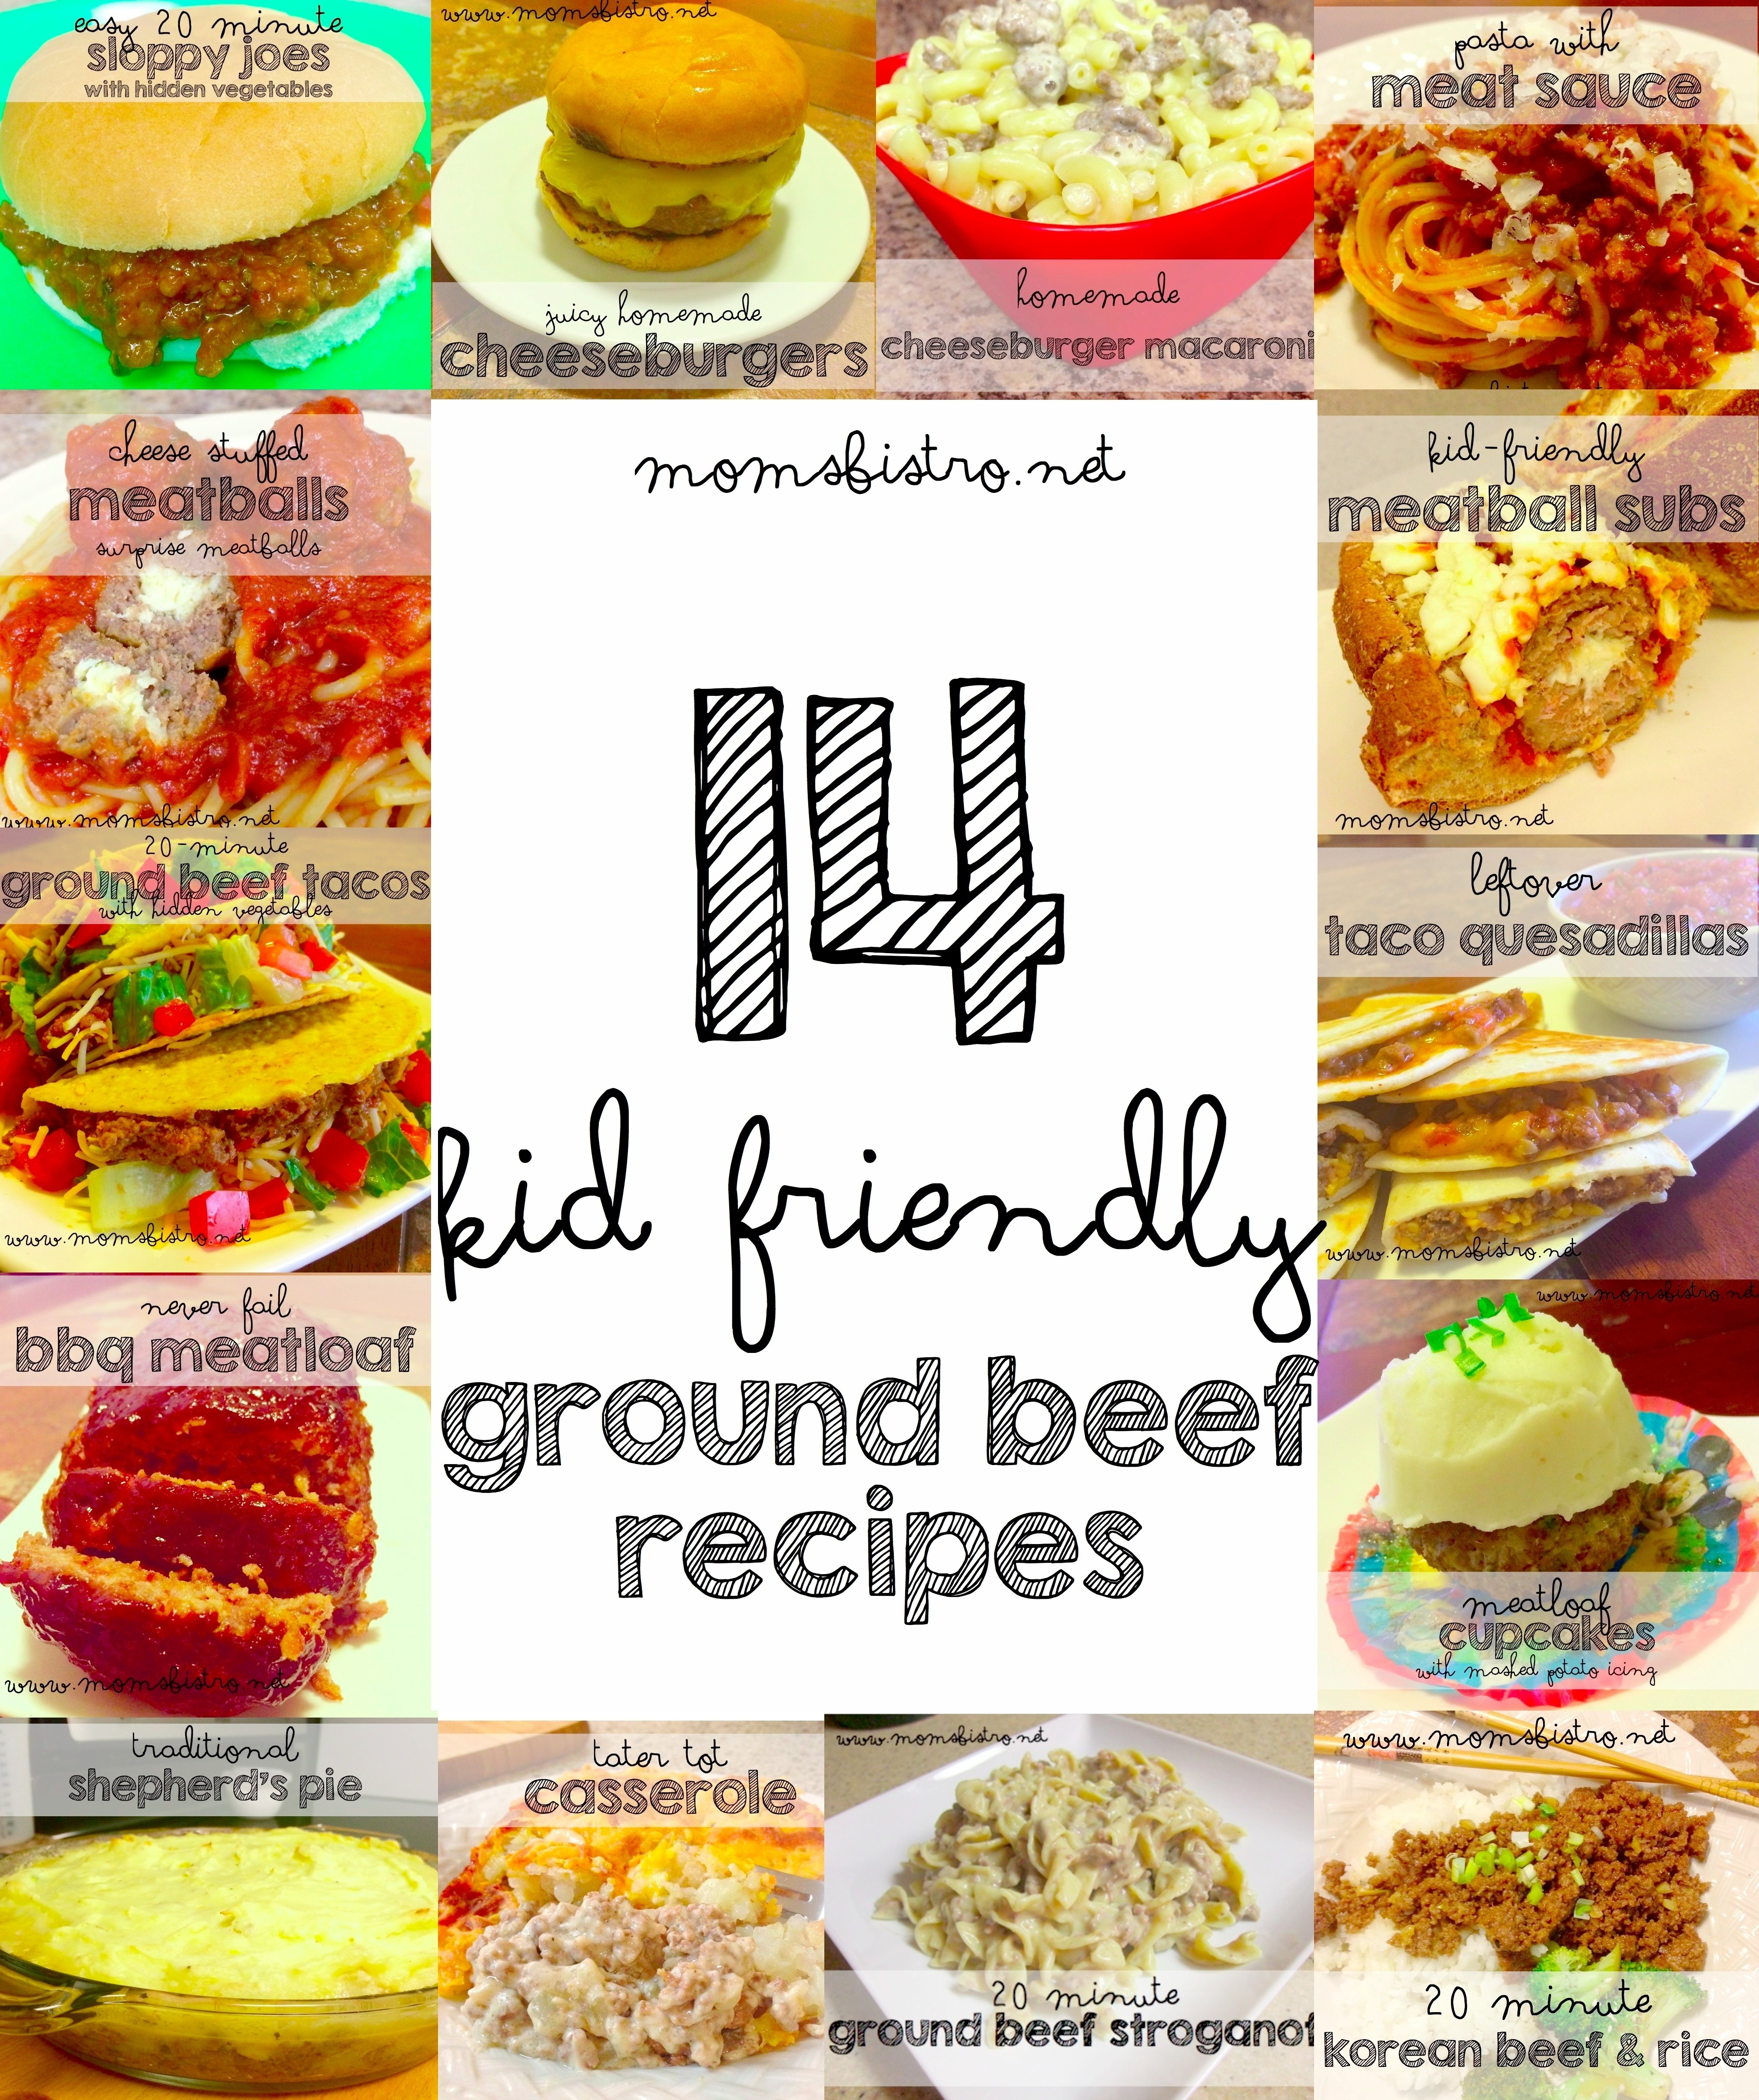 10 Most Recommended Easy Supper Ideas For Families 14 easy kid friendly ground beef recipes to try for dinner tonight 18 2021